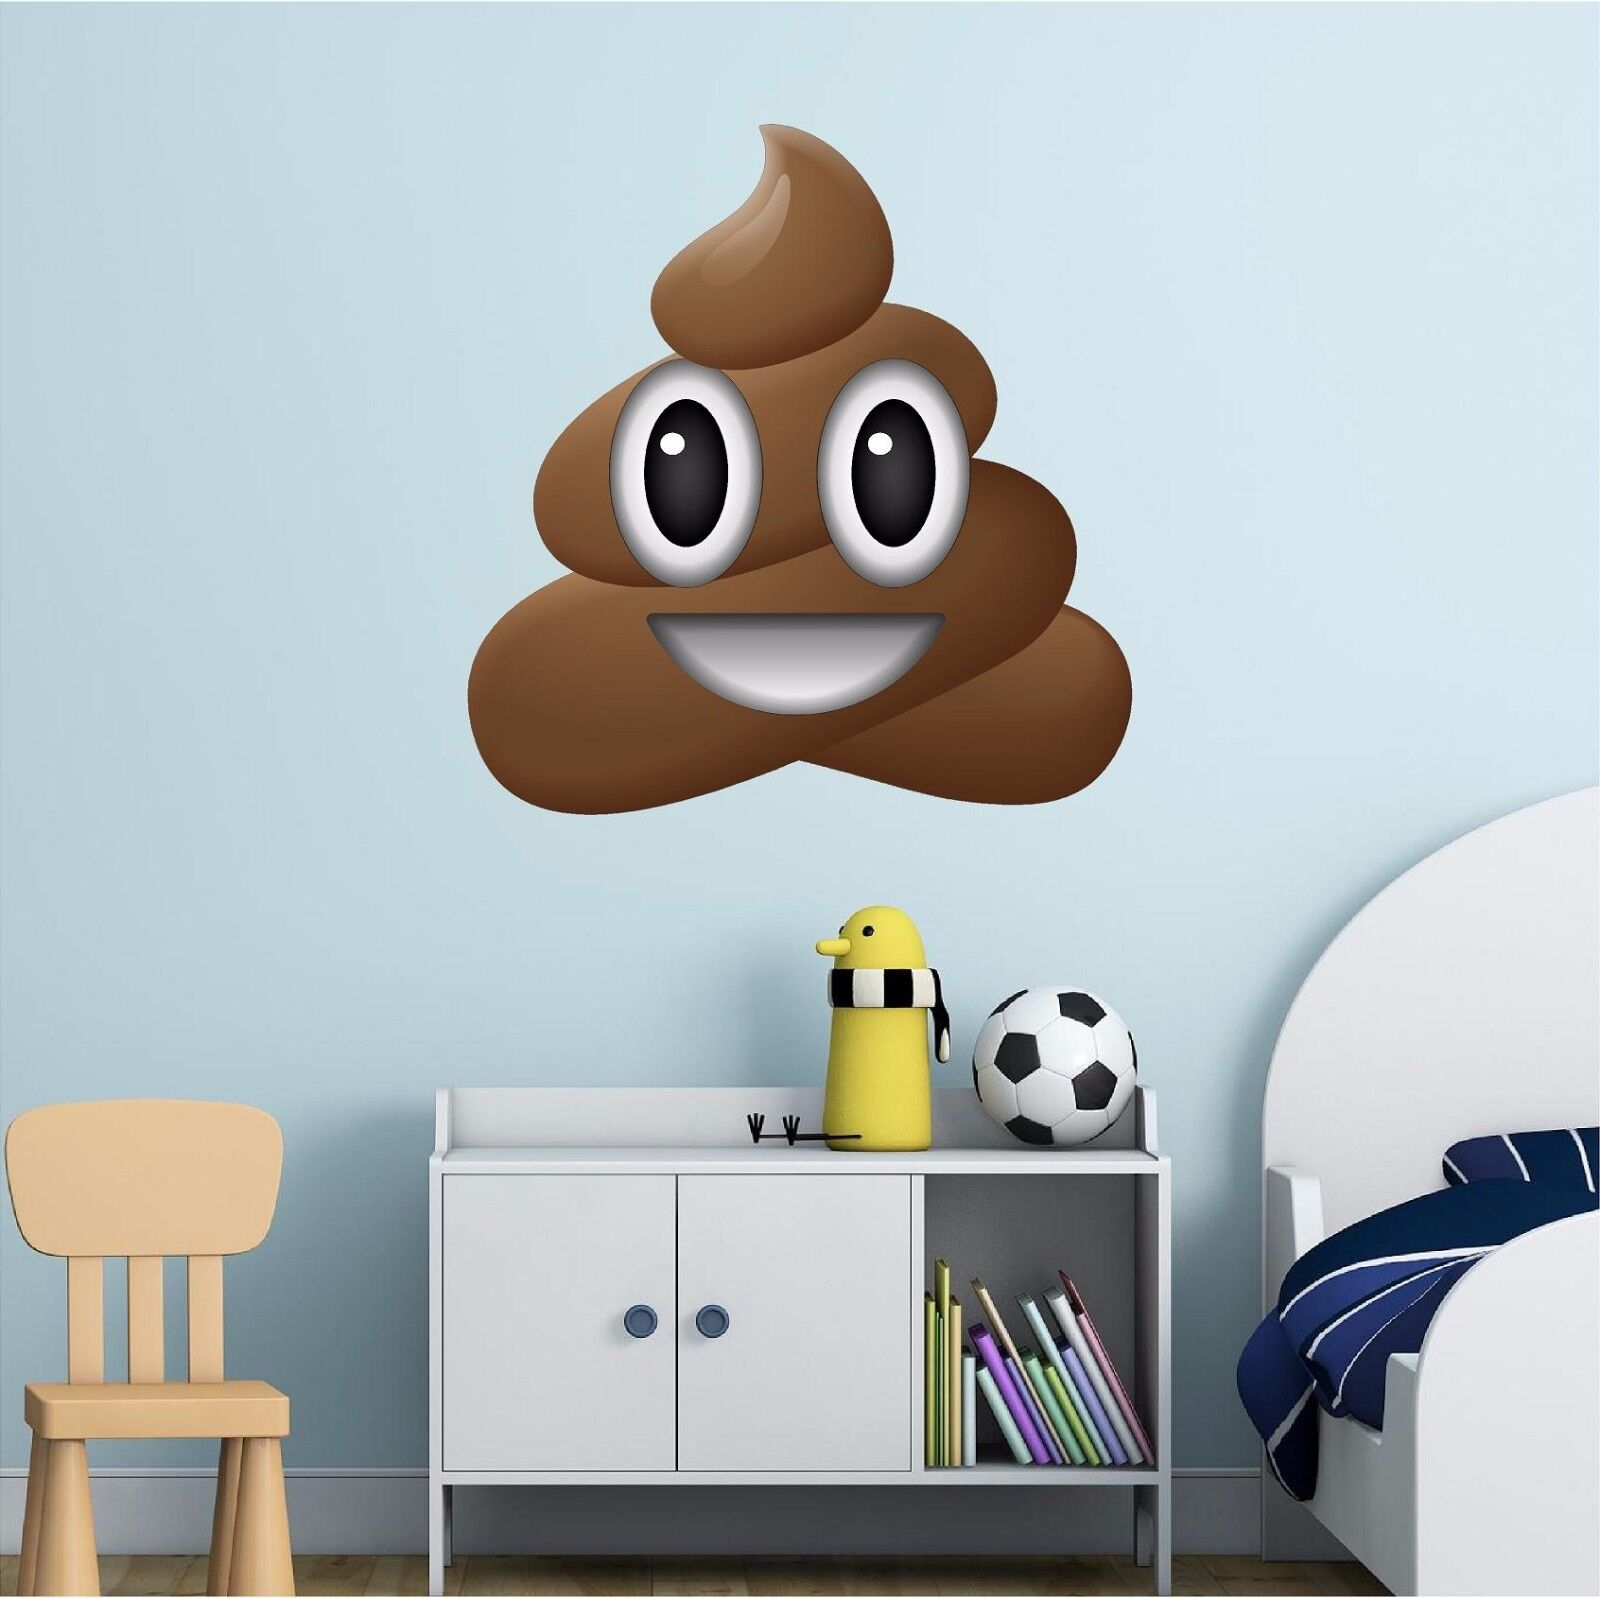 Happy Pile of Poo Emoji Wall Decal Funny Iphone Apple Emoticon Sticker Graphic